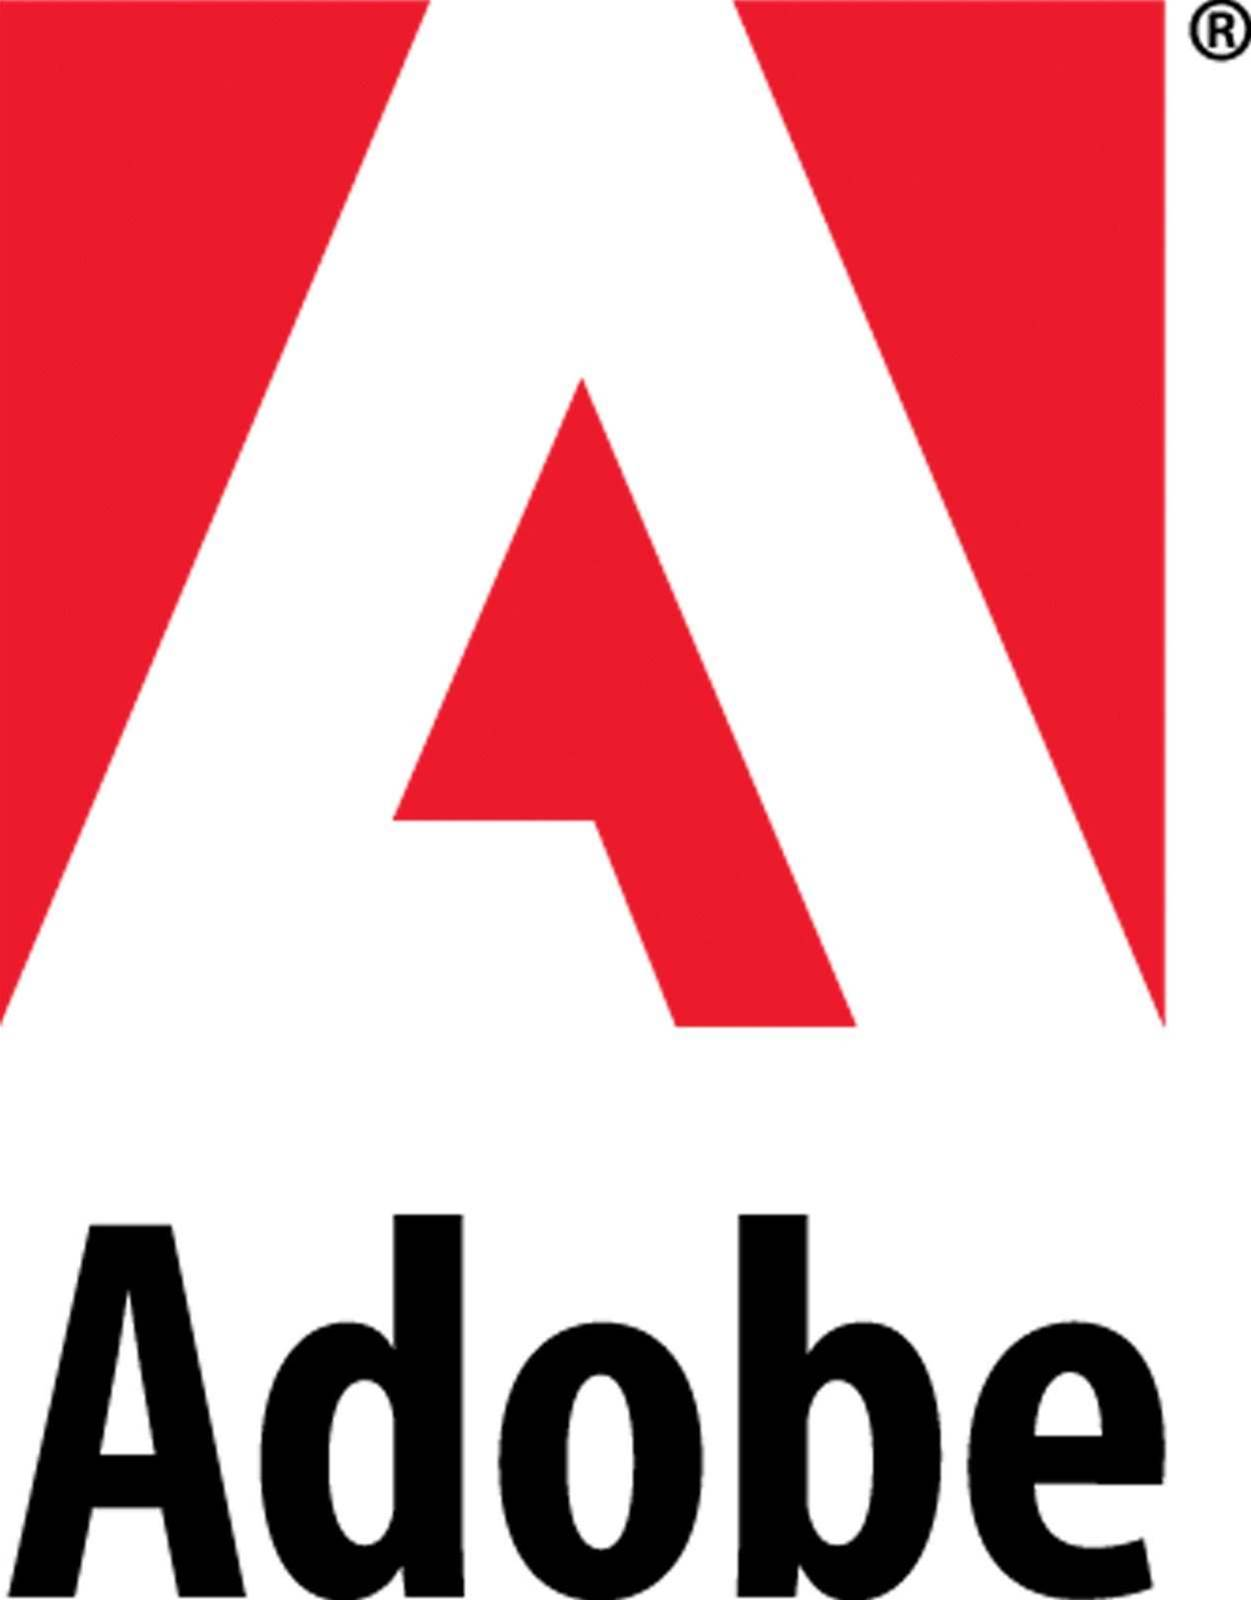 Adobe forum cracked, user details dumped